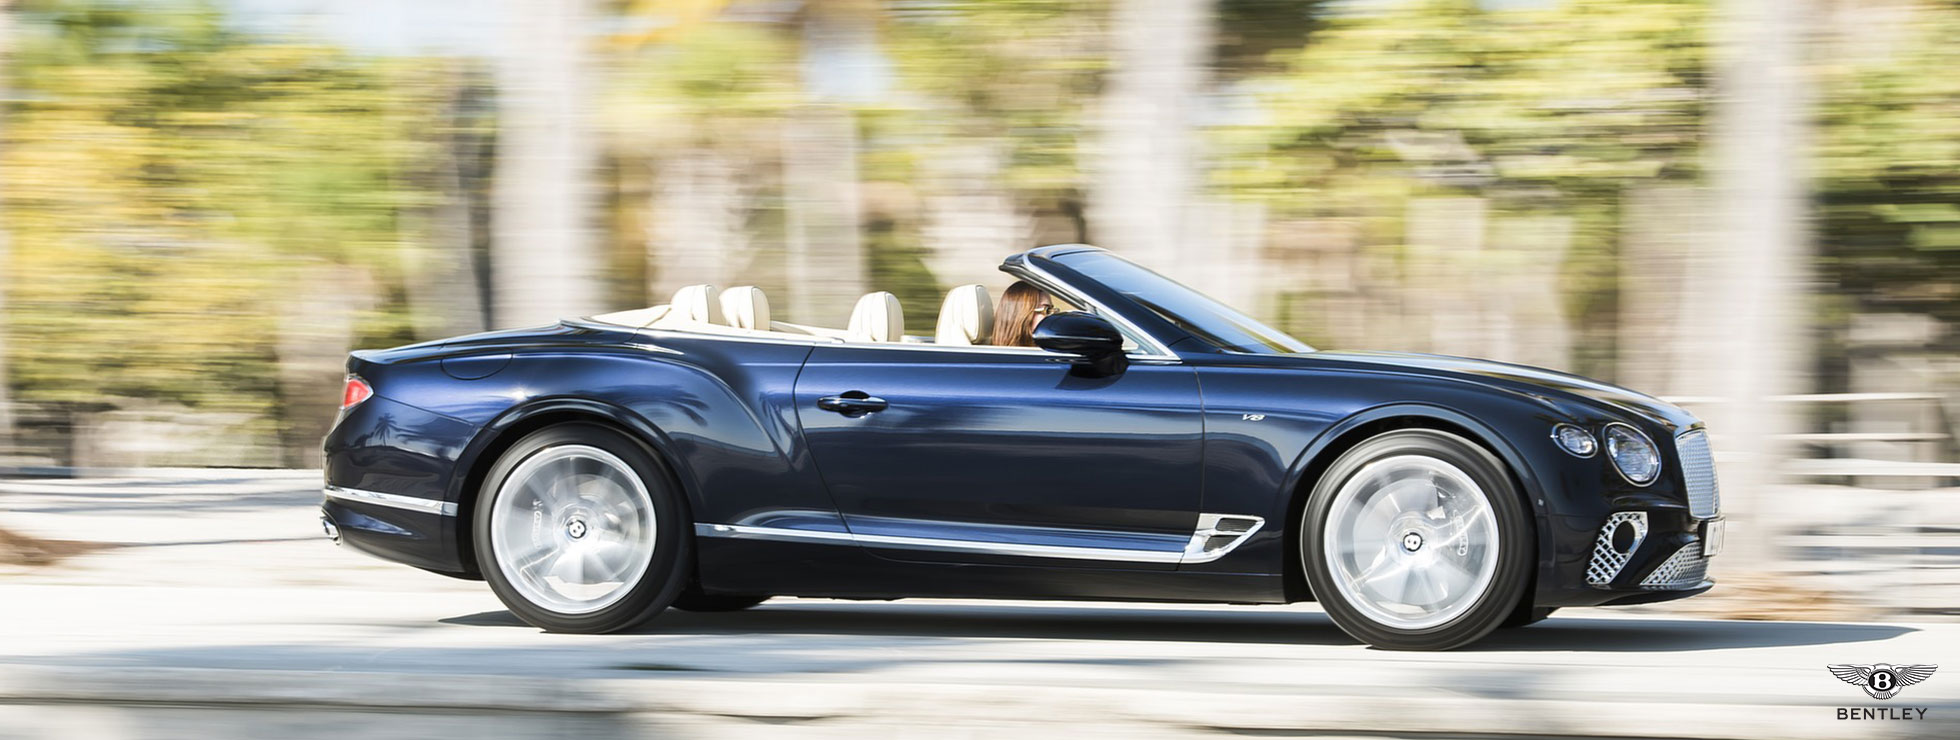 page_EVO_bentley_continental_gt_v8_convertible